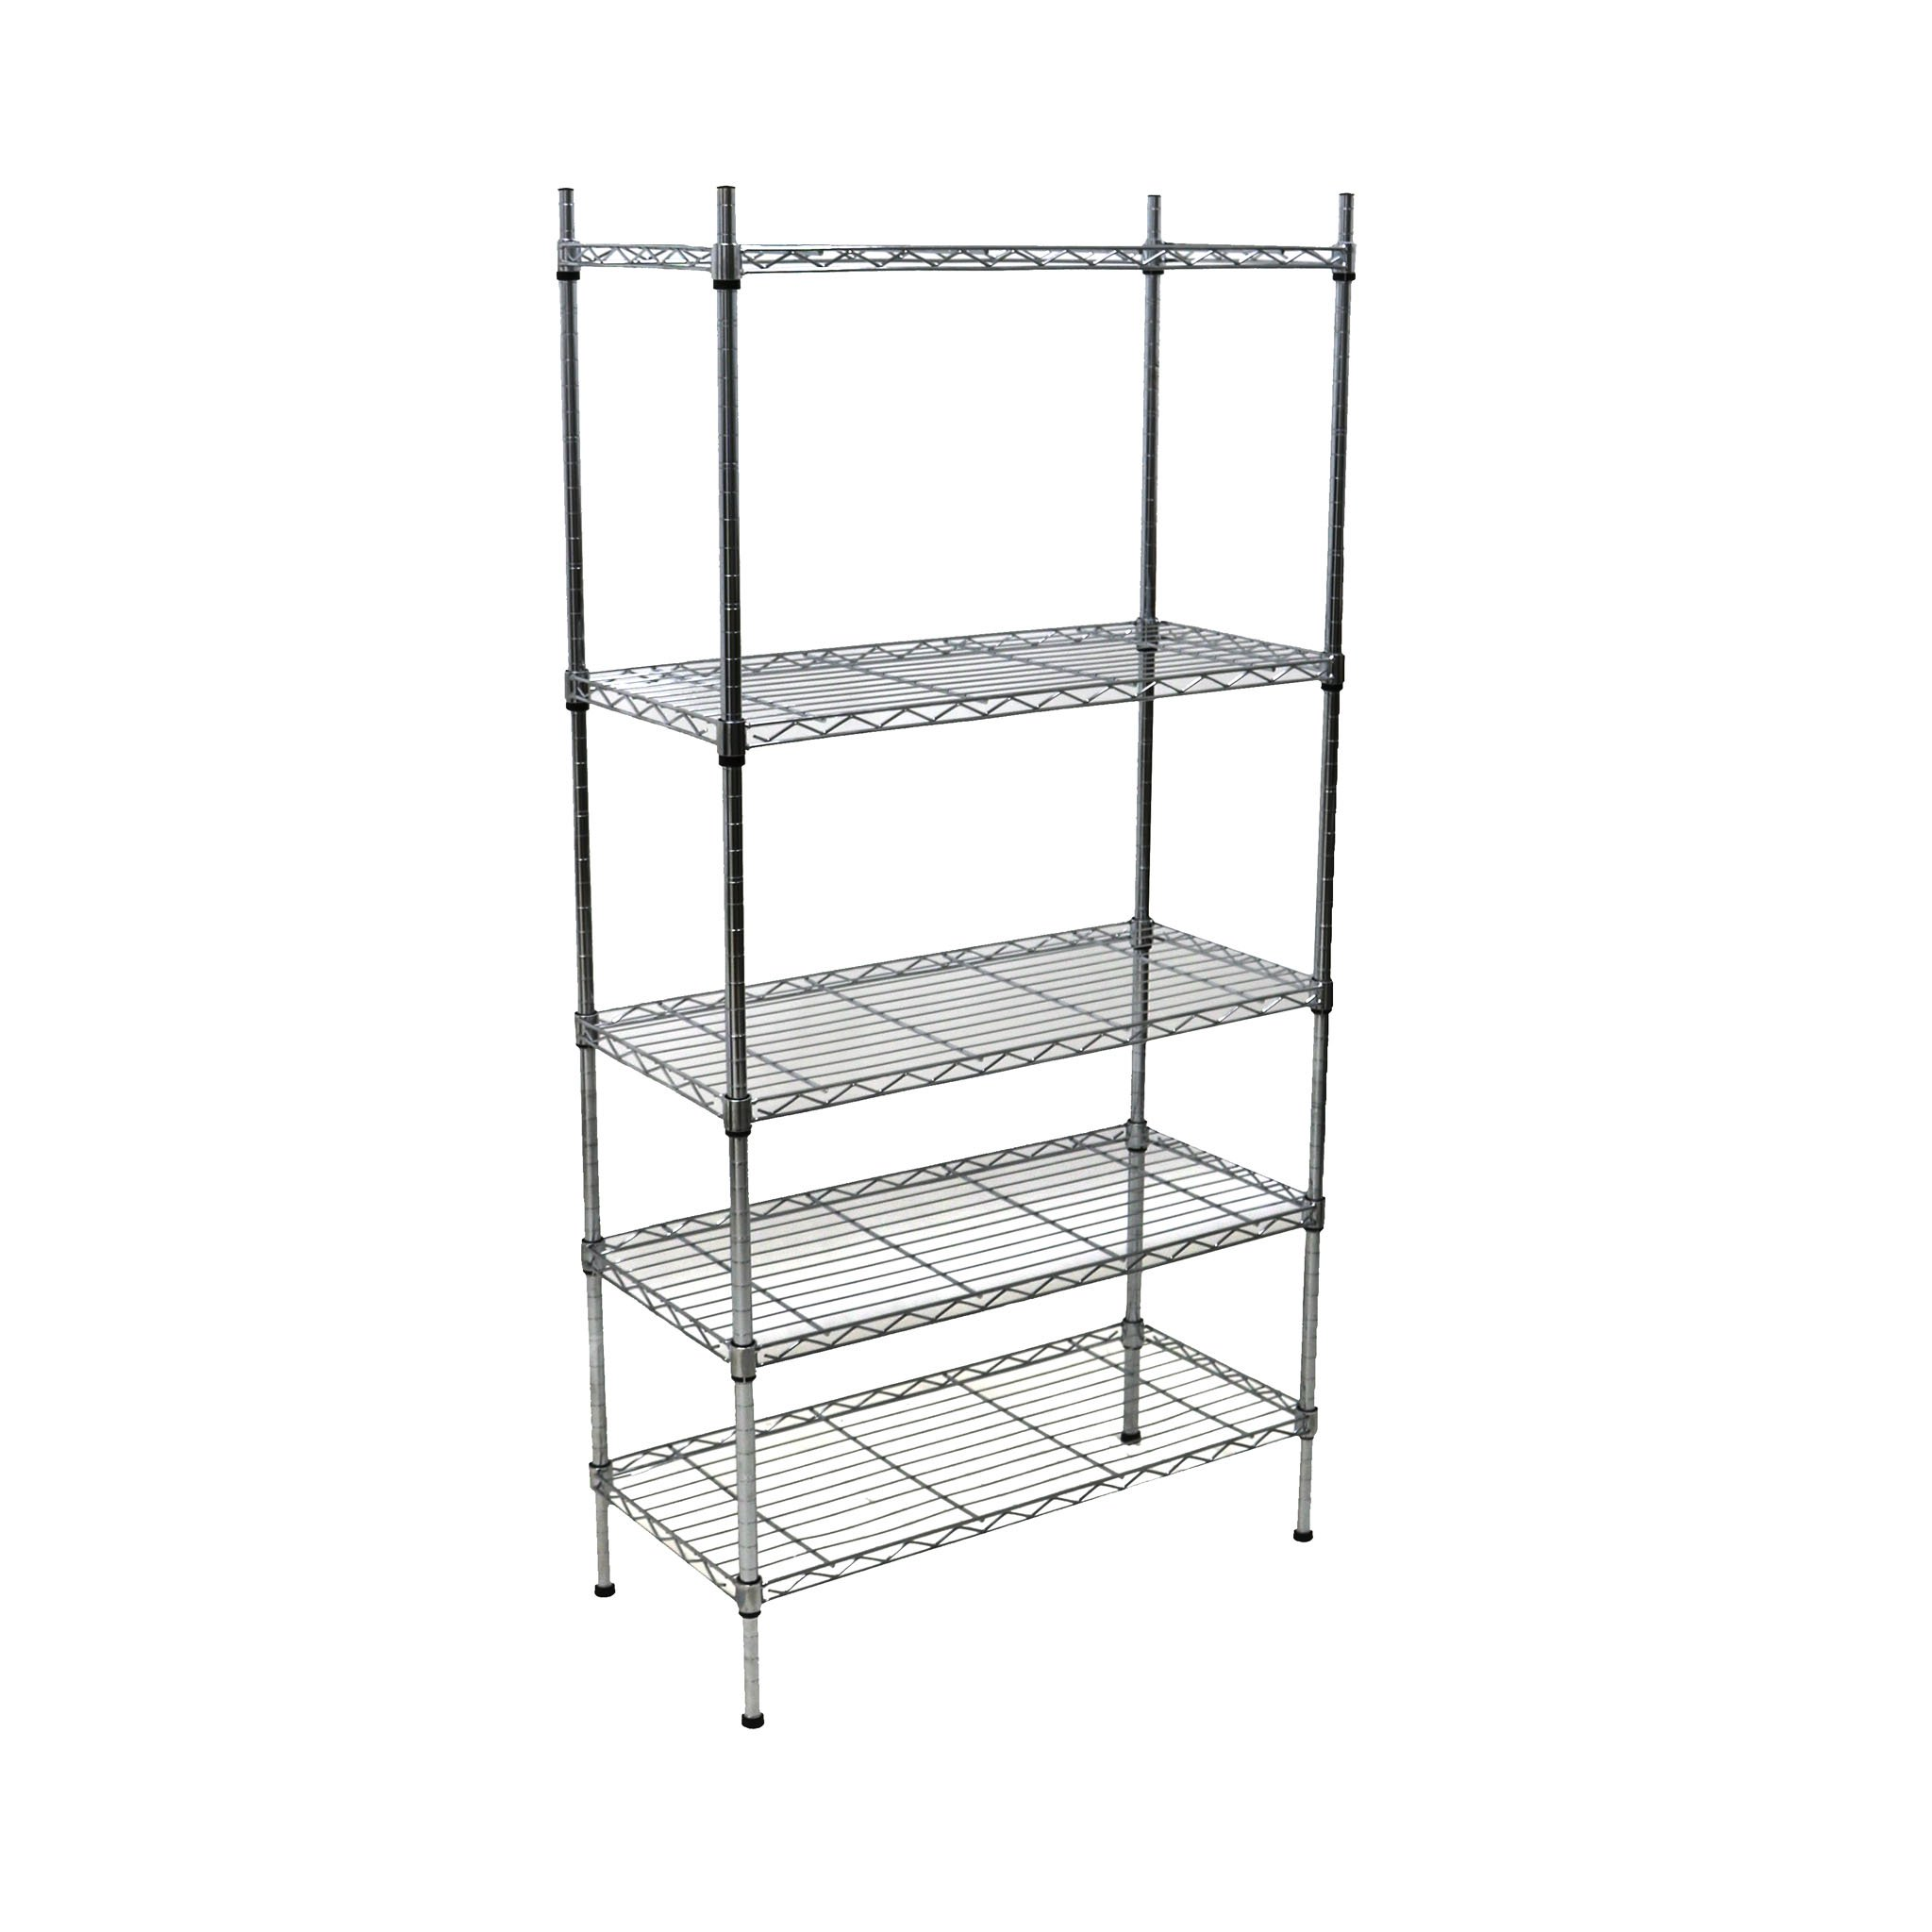 d inc marketlab units track p shelving shelf storage